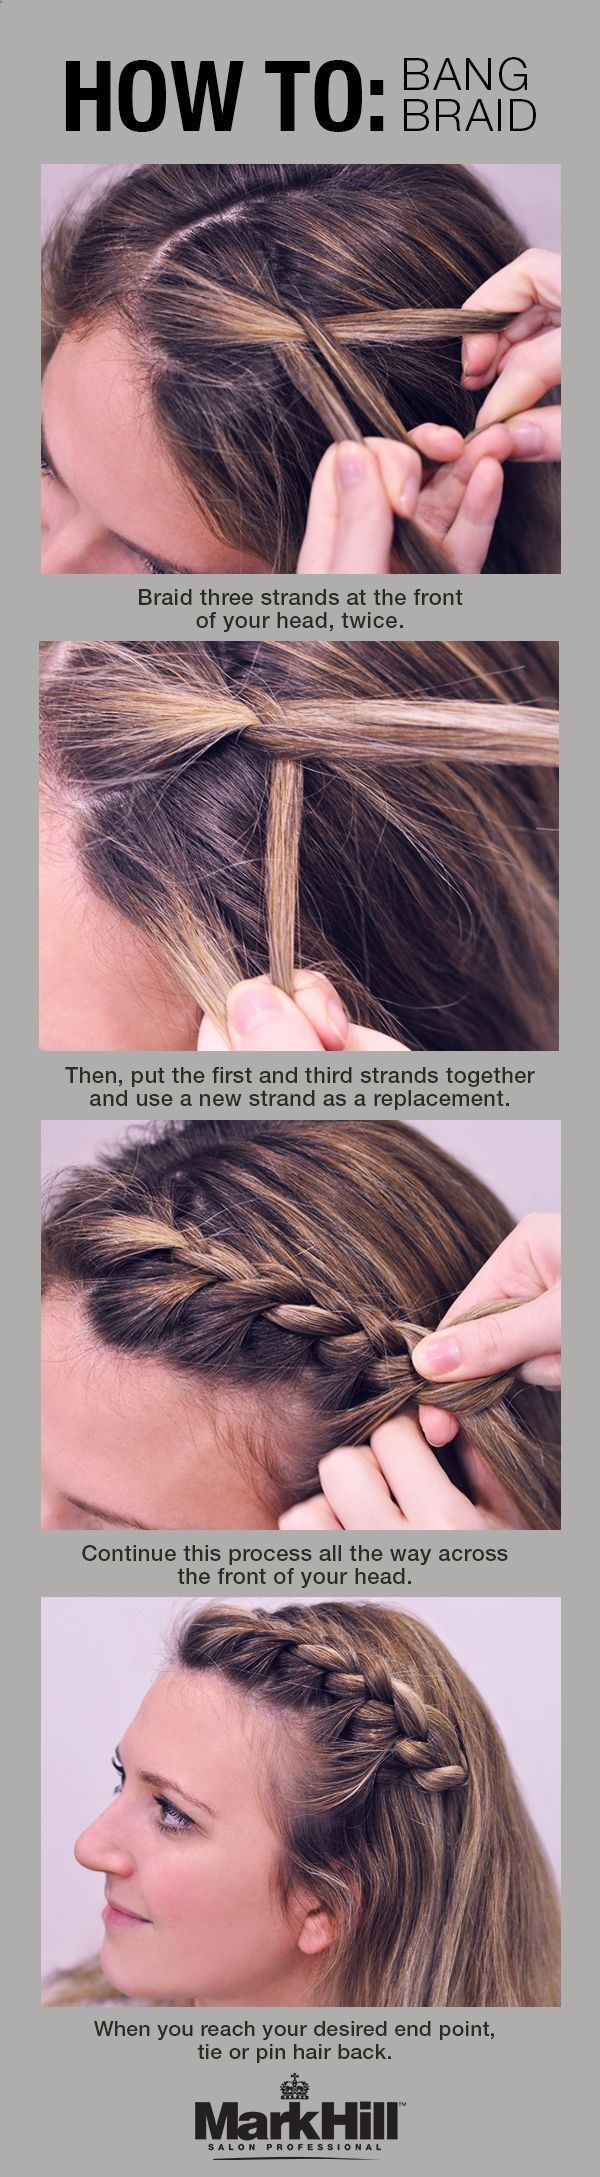 Finally, a tutorial I can follow!